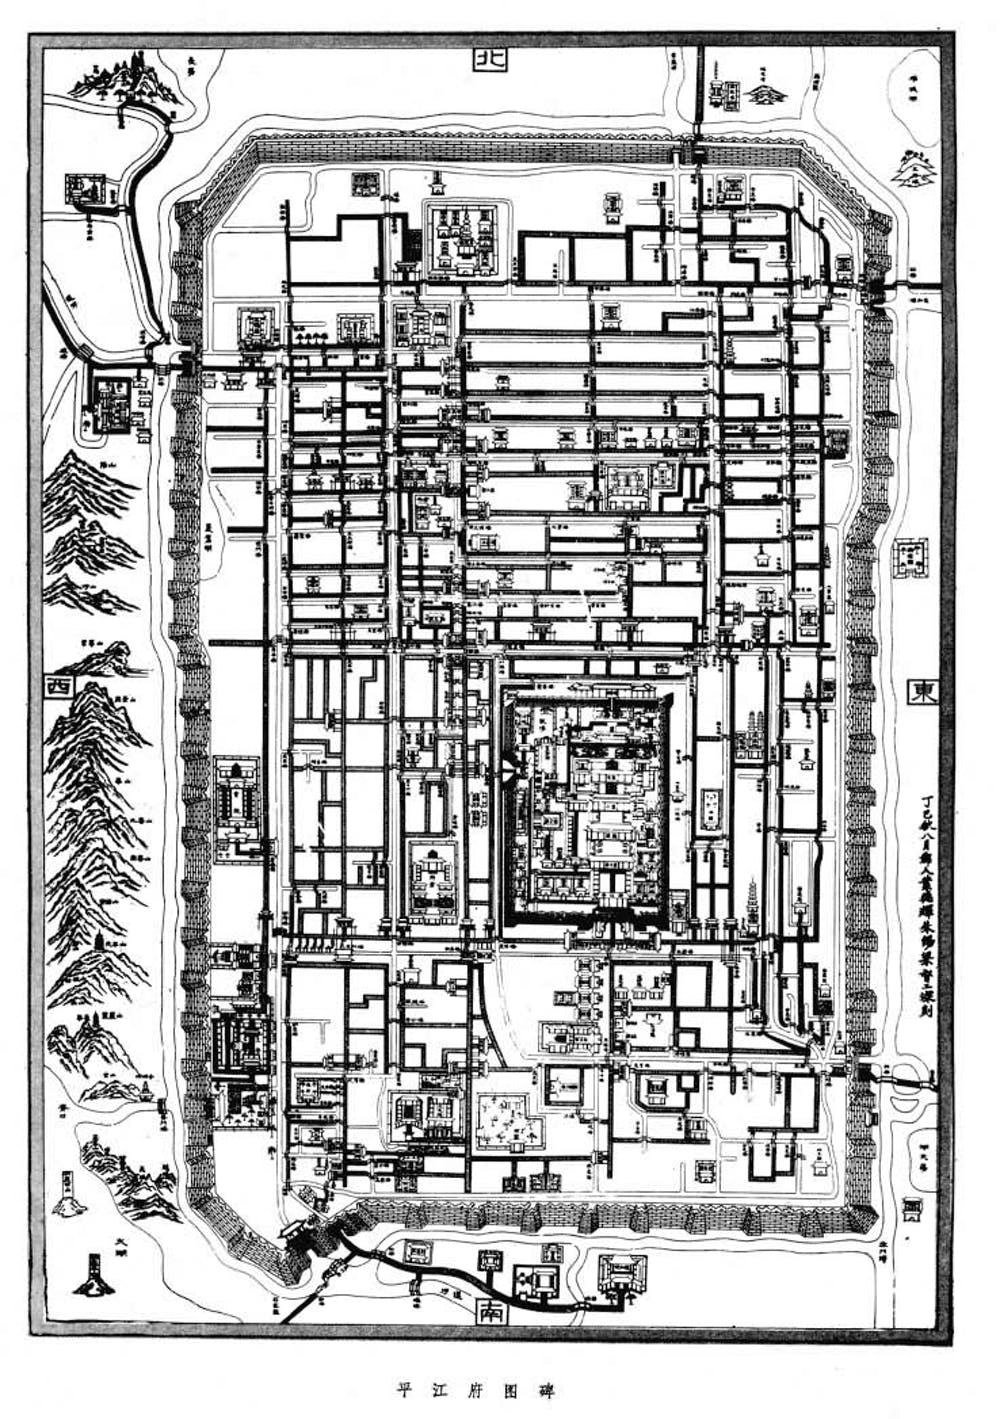 Old map of 13th-centiry Suzhou, then called Pinjiang.